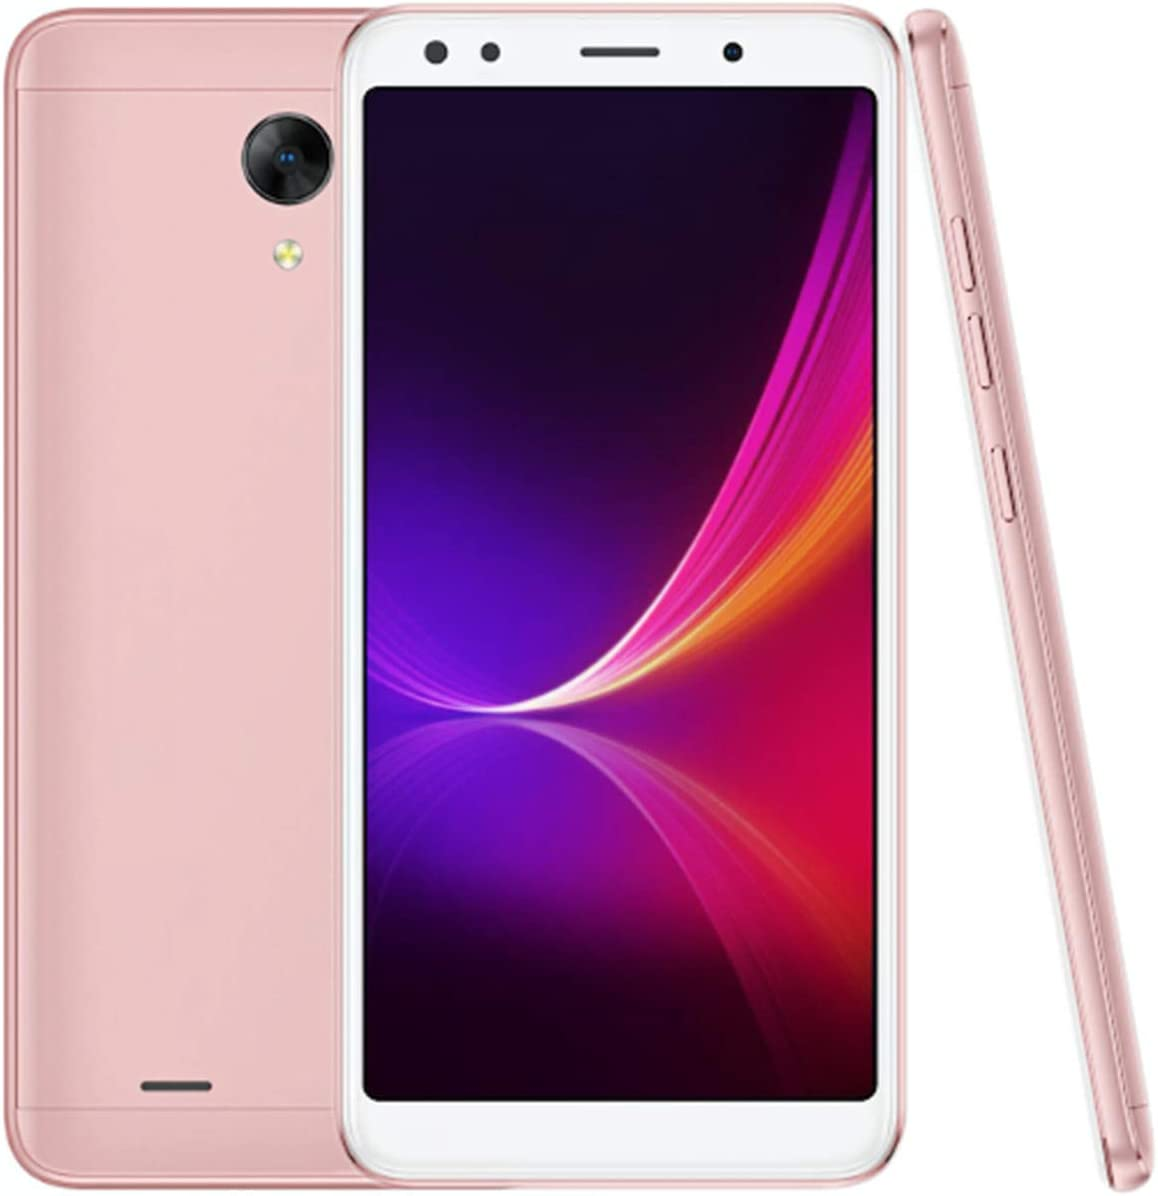 4.0 Inch Android 6.0 Smartphone